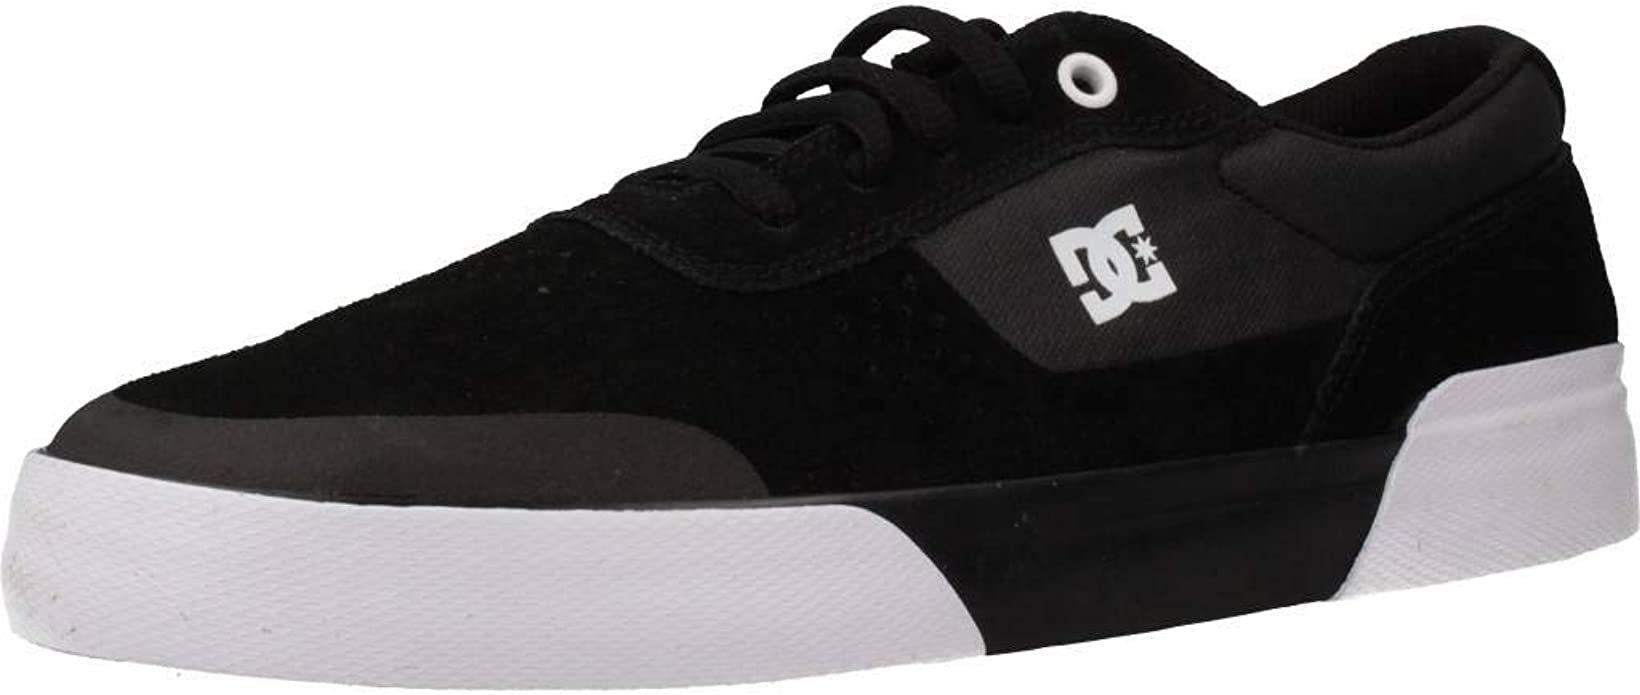 DC Shoes Switch Plus S Sneakers Herren Schwarz Weiß